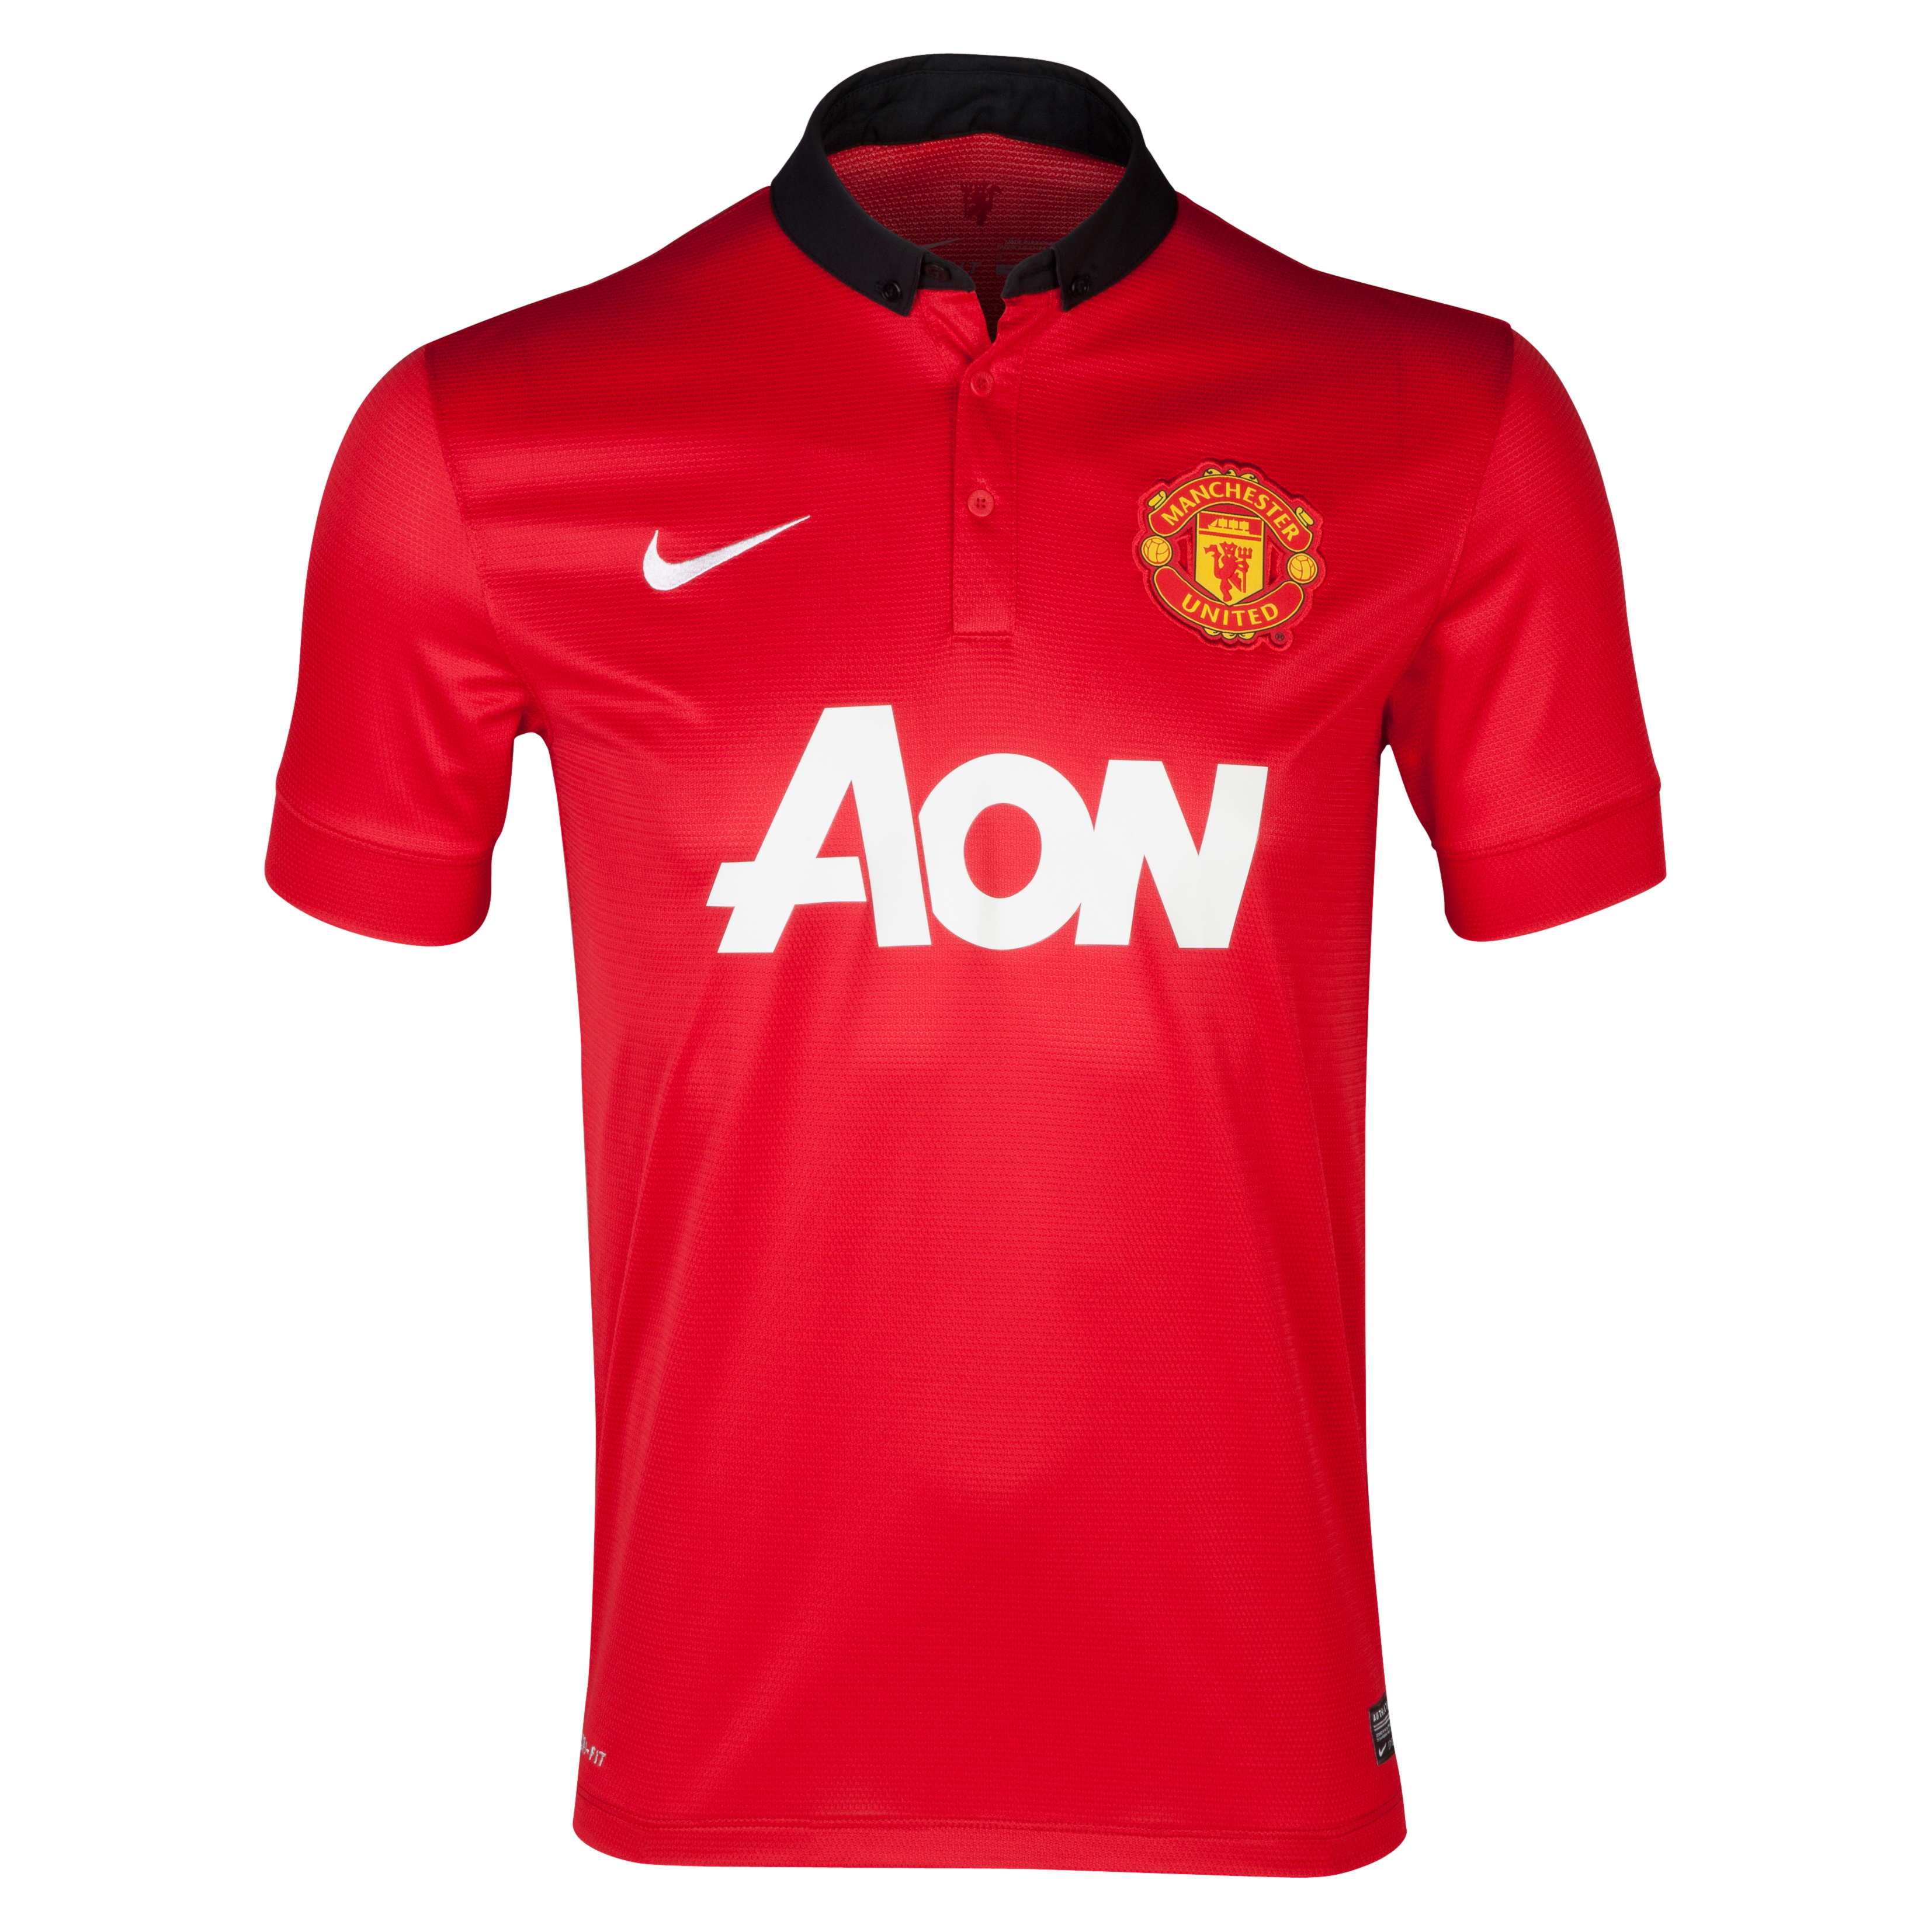 MAILLOT DOMICILE MANCHESTER UNITED  2013/14  YOUTHS  POWELL 25